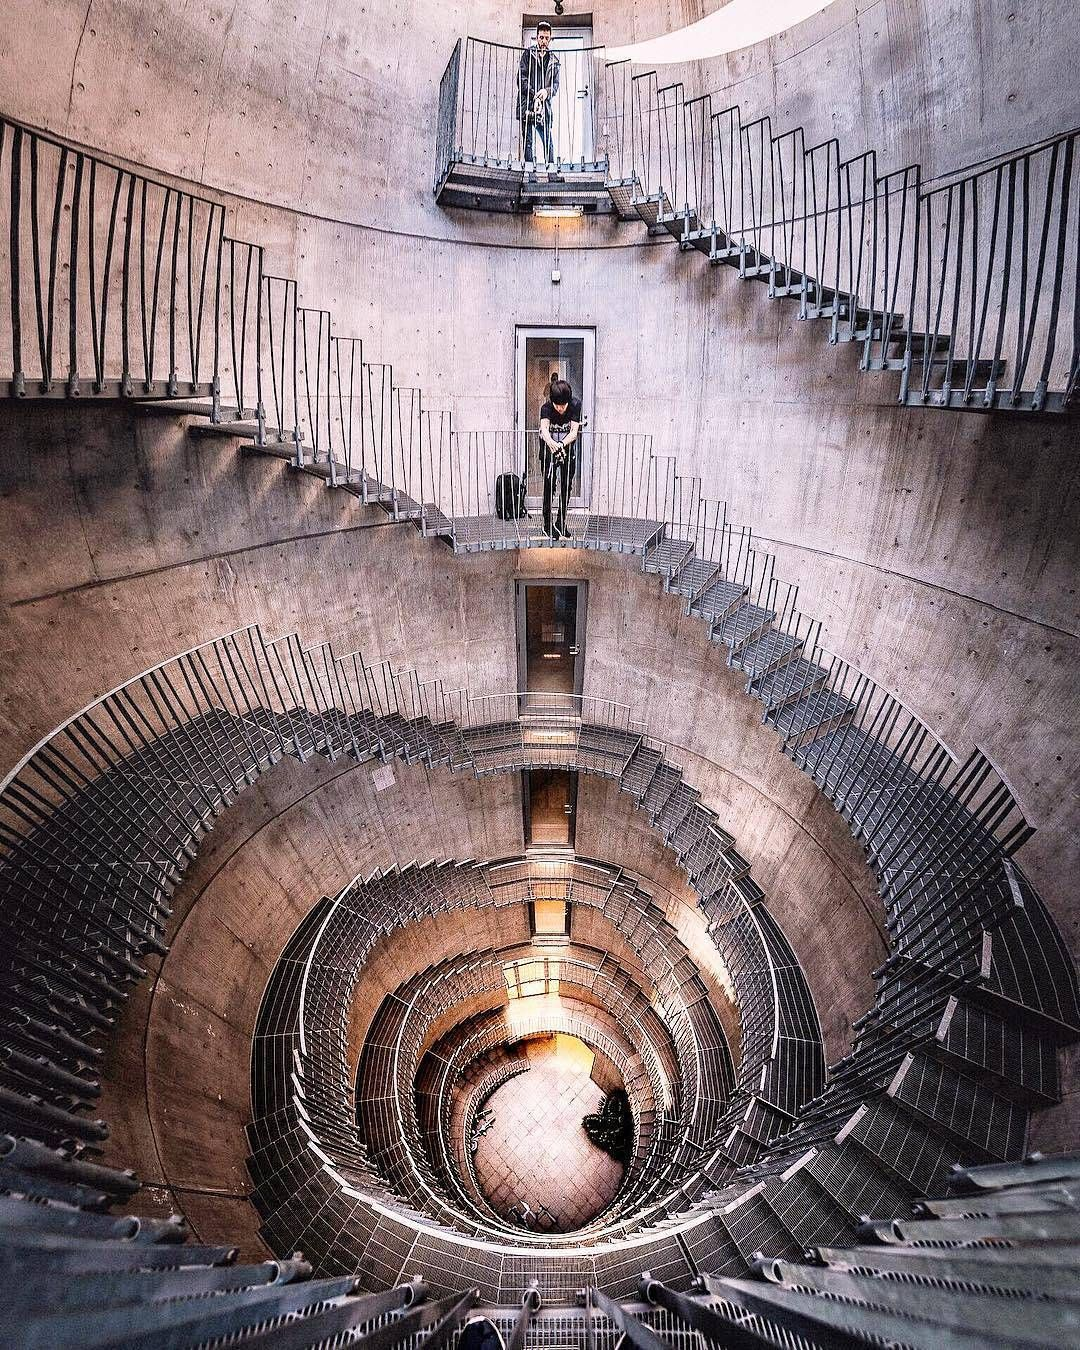 Best Wauw Great Photography Of A Staircase With A Wide Angle 640 x 480